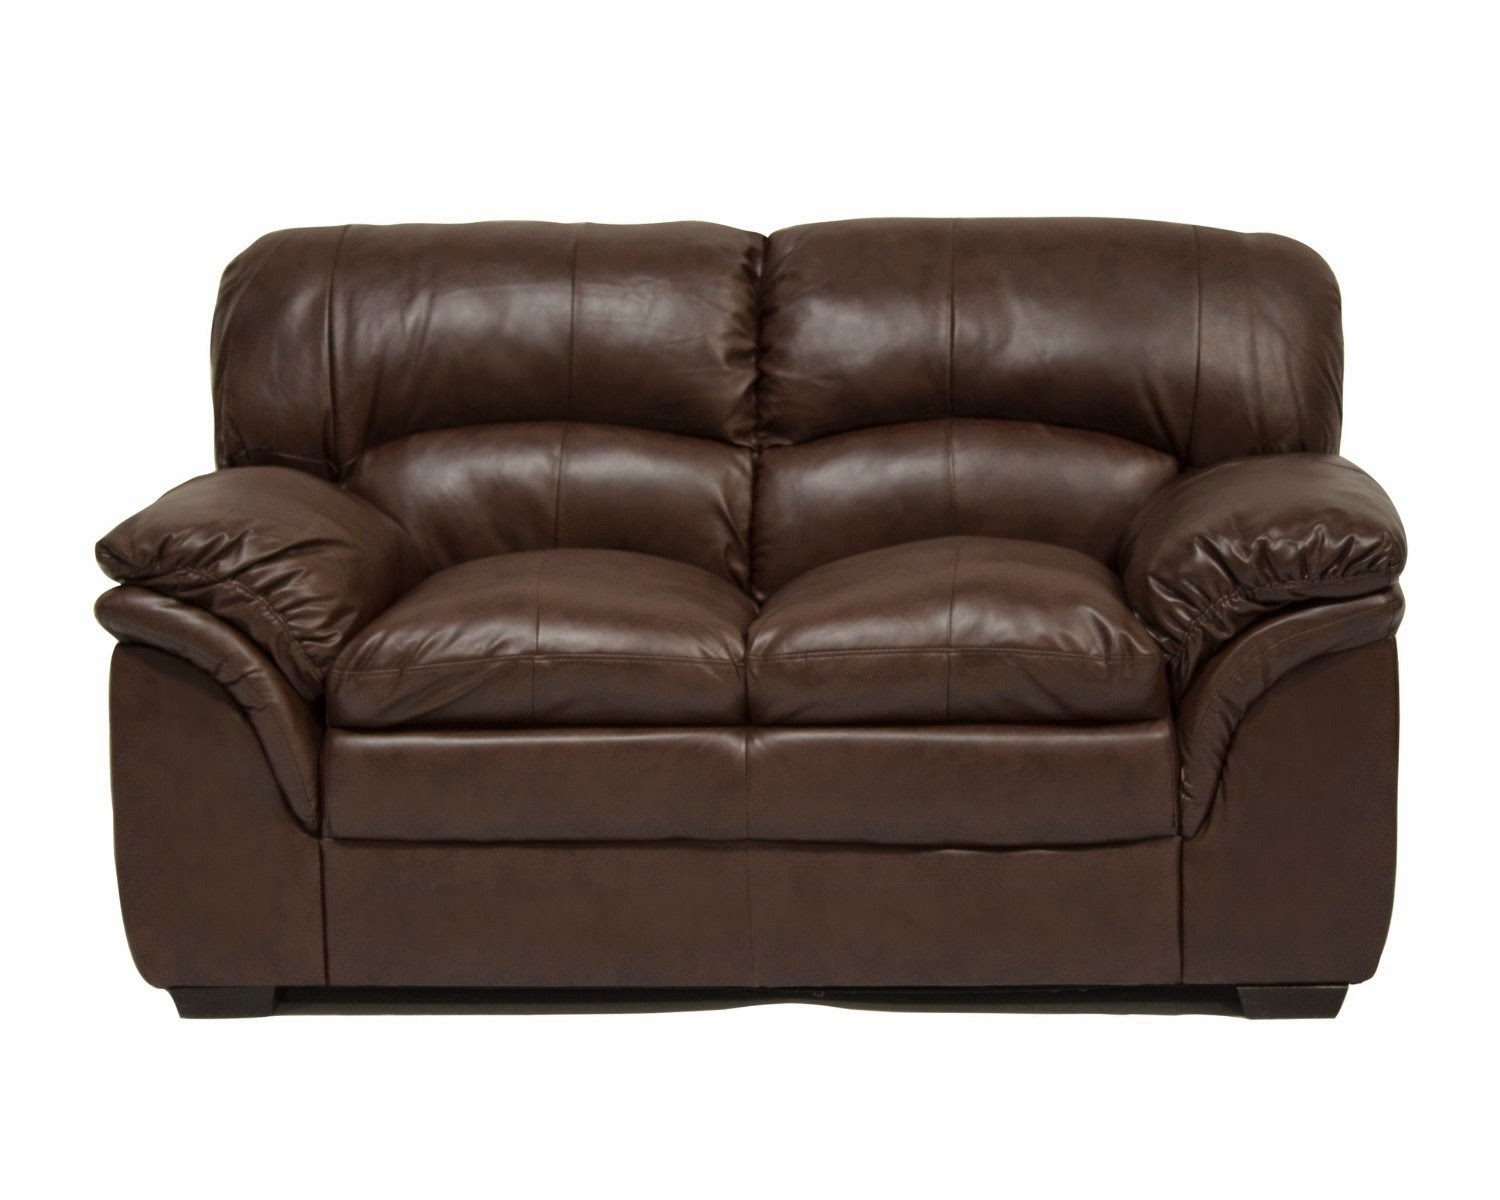 Corsetta 2 Seater Recliner Sofa Reclining Sofas For Sale Cheap: Two Seater Recliner Sofa Uk